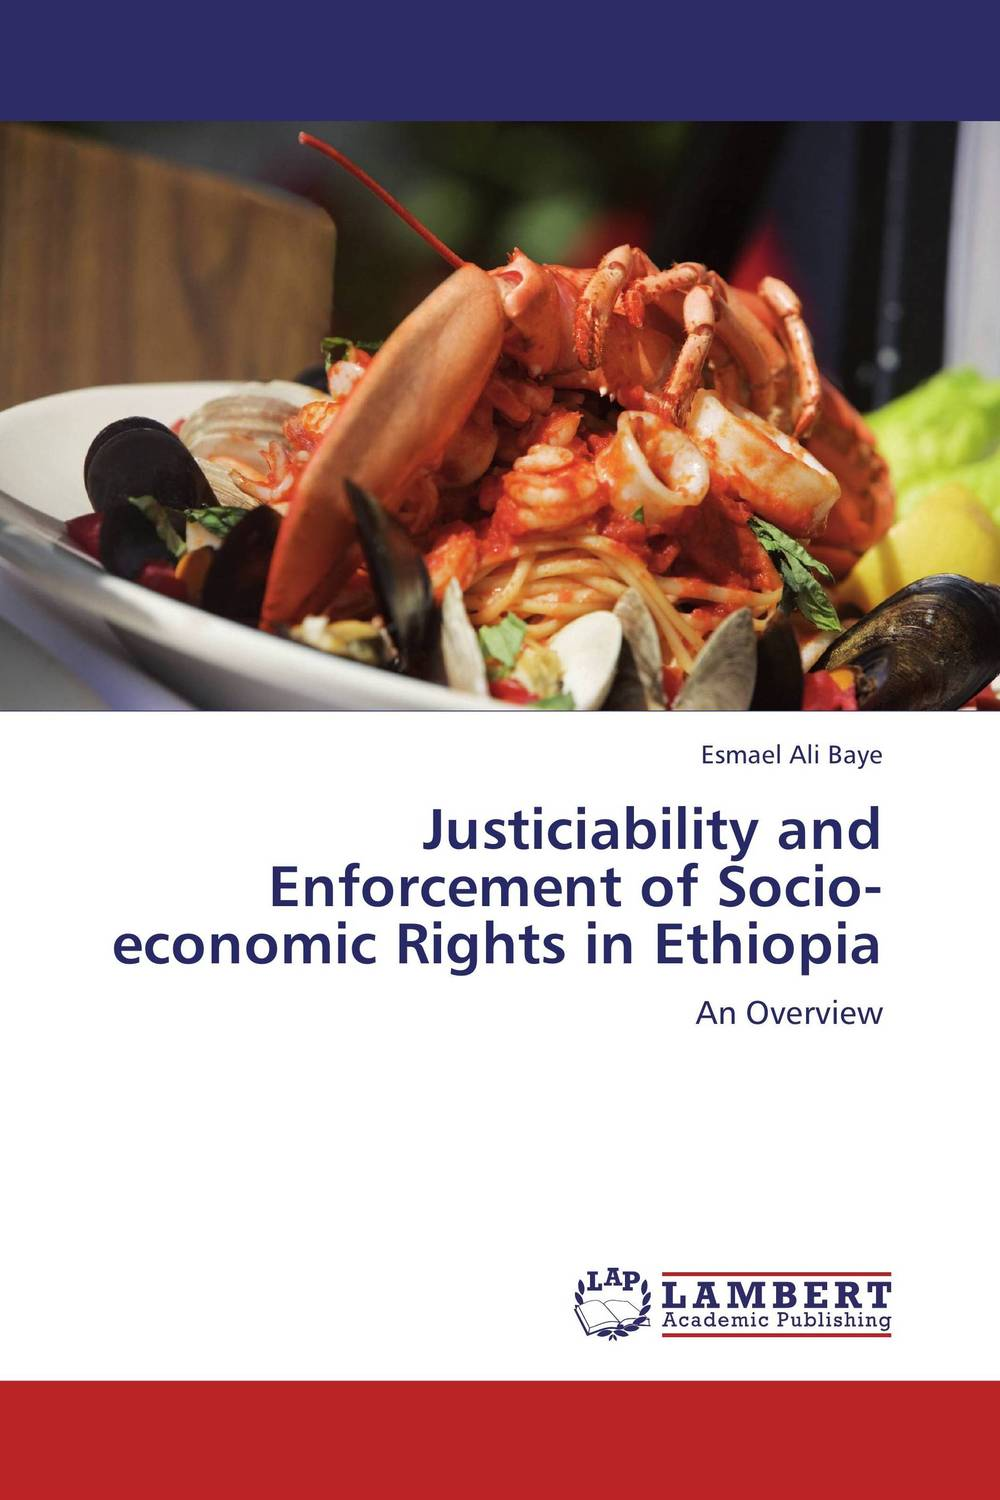 Фото Justiciability and Enforcement of Socio-economic Rights in Ethiopia business and ethics in a country with political socio economic crisis